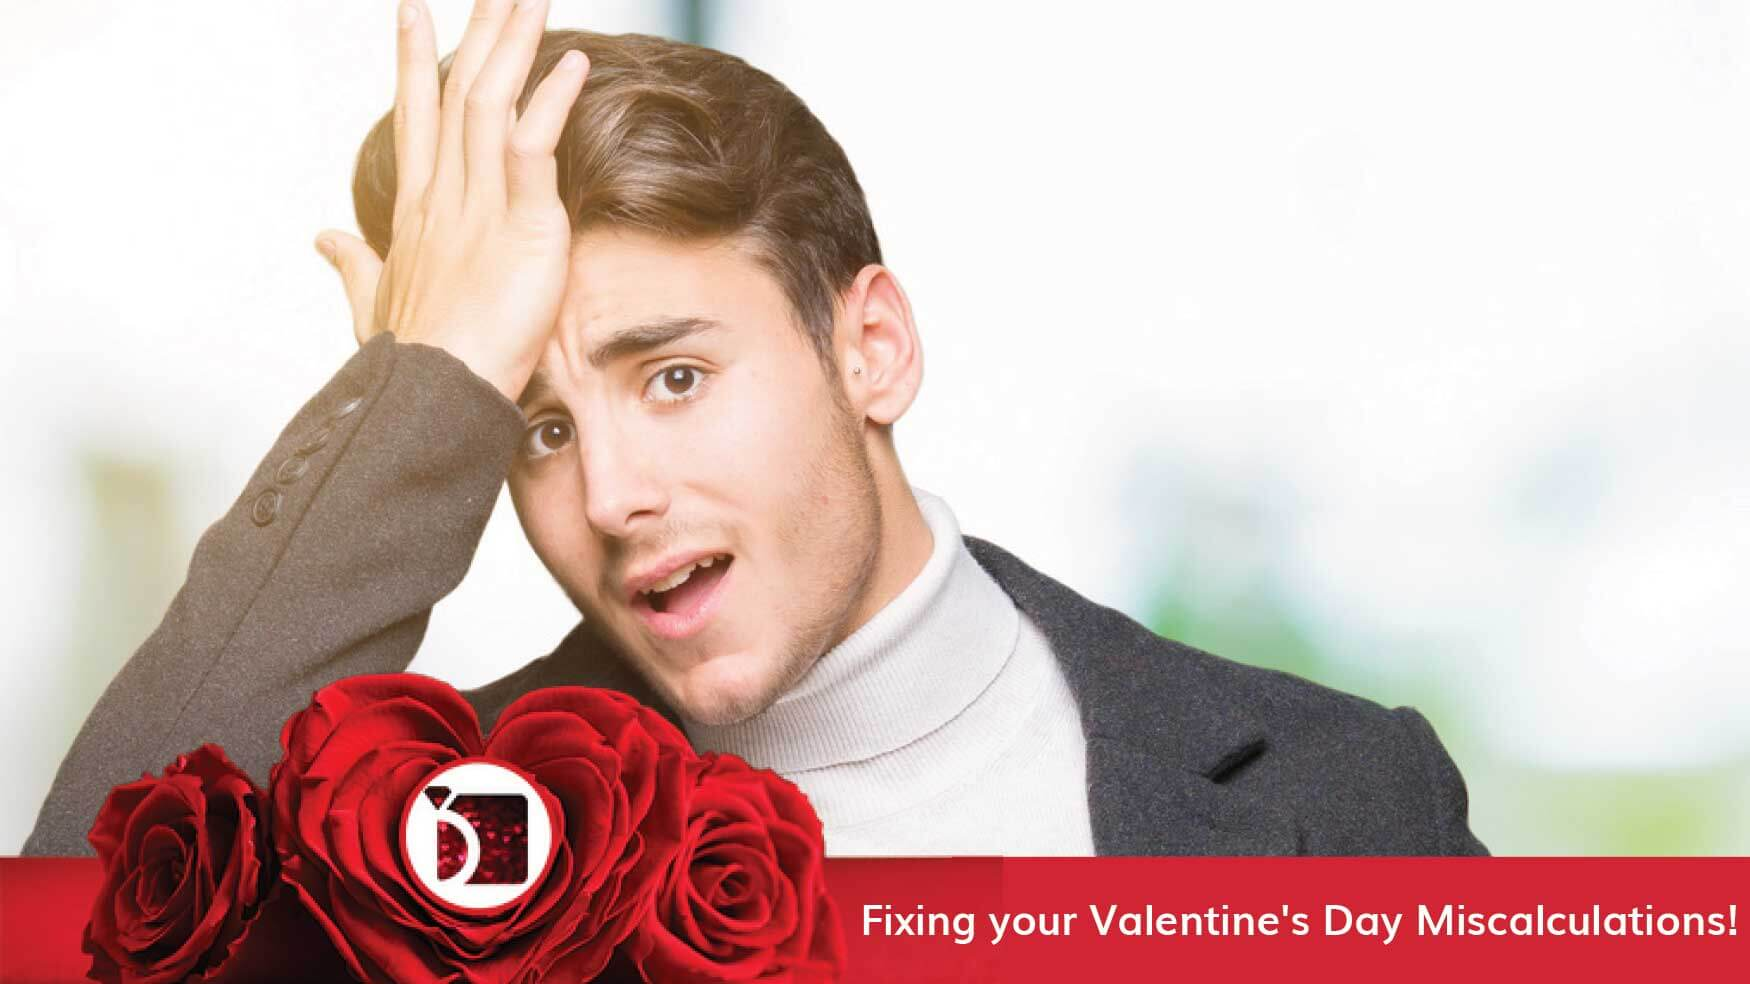 Image Showing Fixing Your Valentine's Day Miscalculations